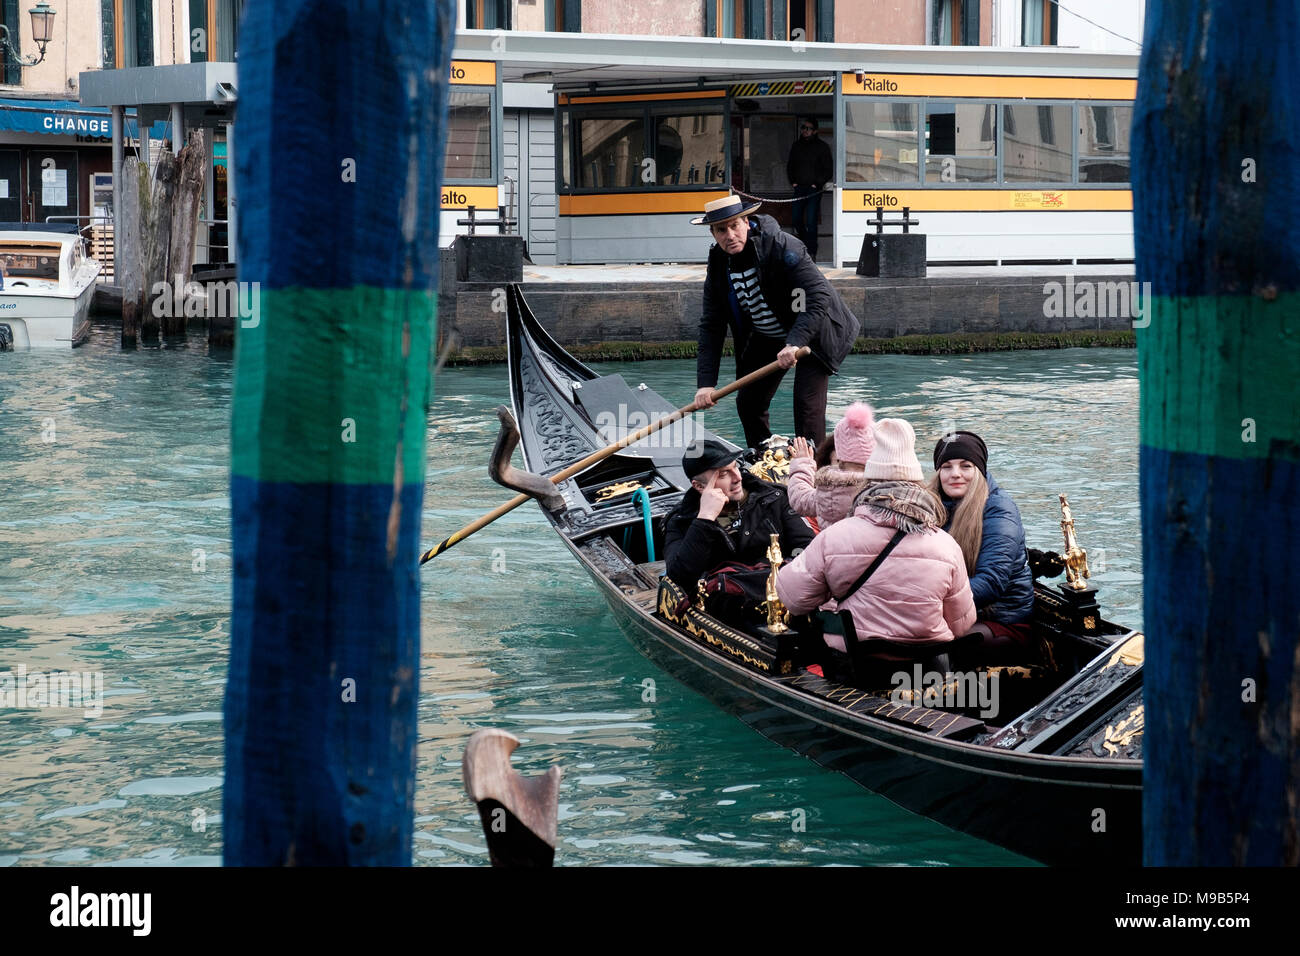 A gondolier guides a gondola across the Grand Canal at Rialto Bridge on a pleasant day in March. Venice, Italy - Stock Image